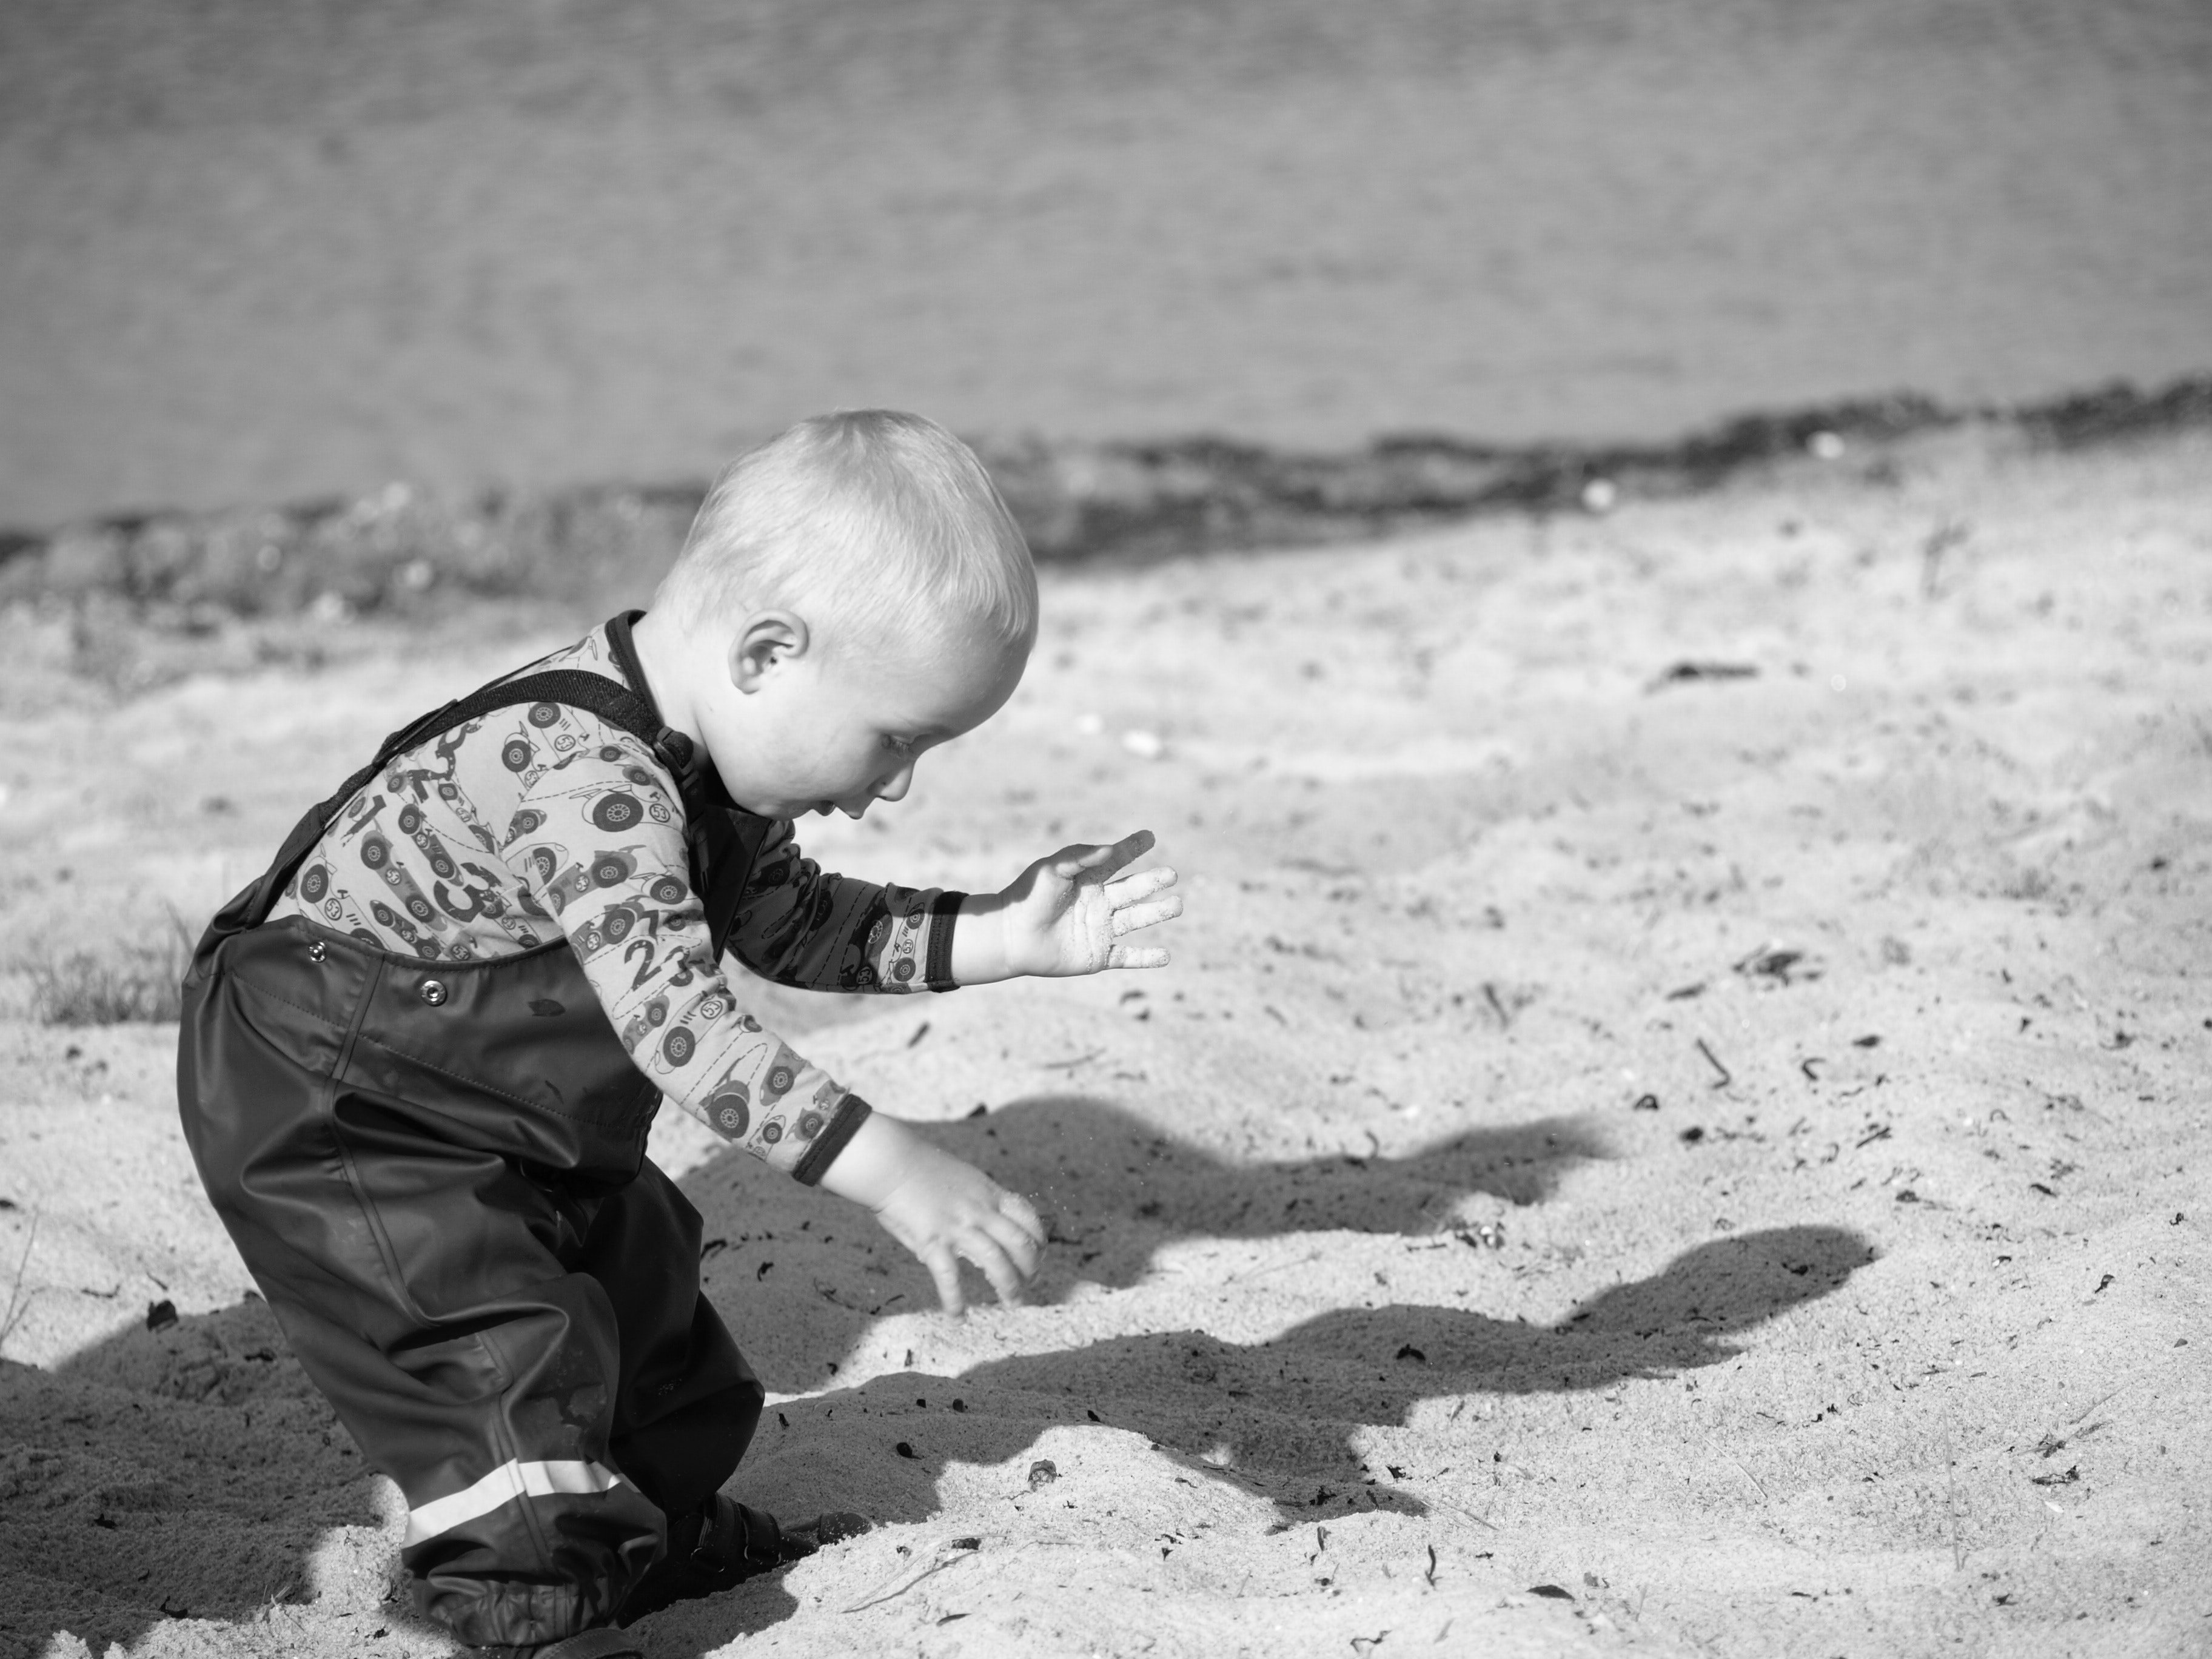 Grayscale Photography Of Toddler On Beach Sand, Person, Young, Water, Toddler, HQ Photo